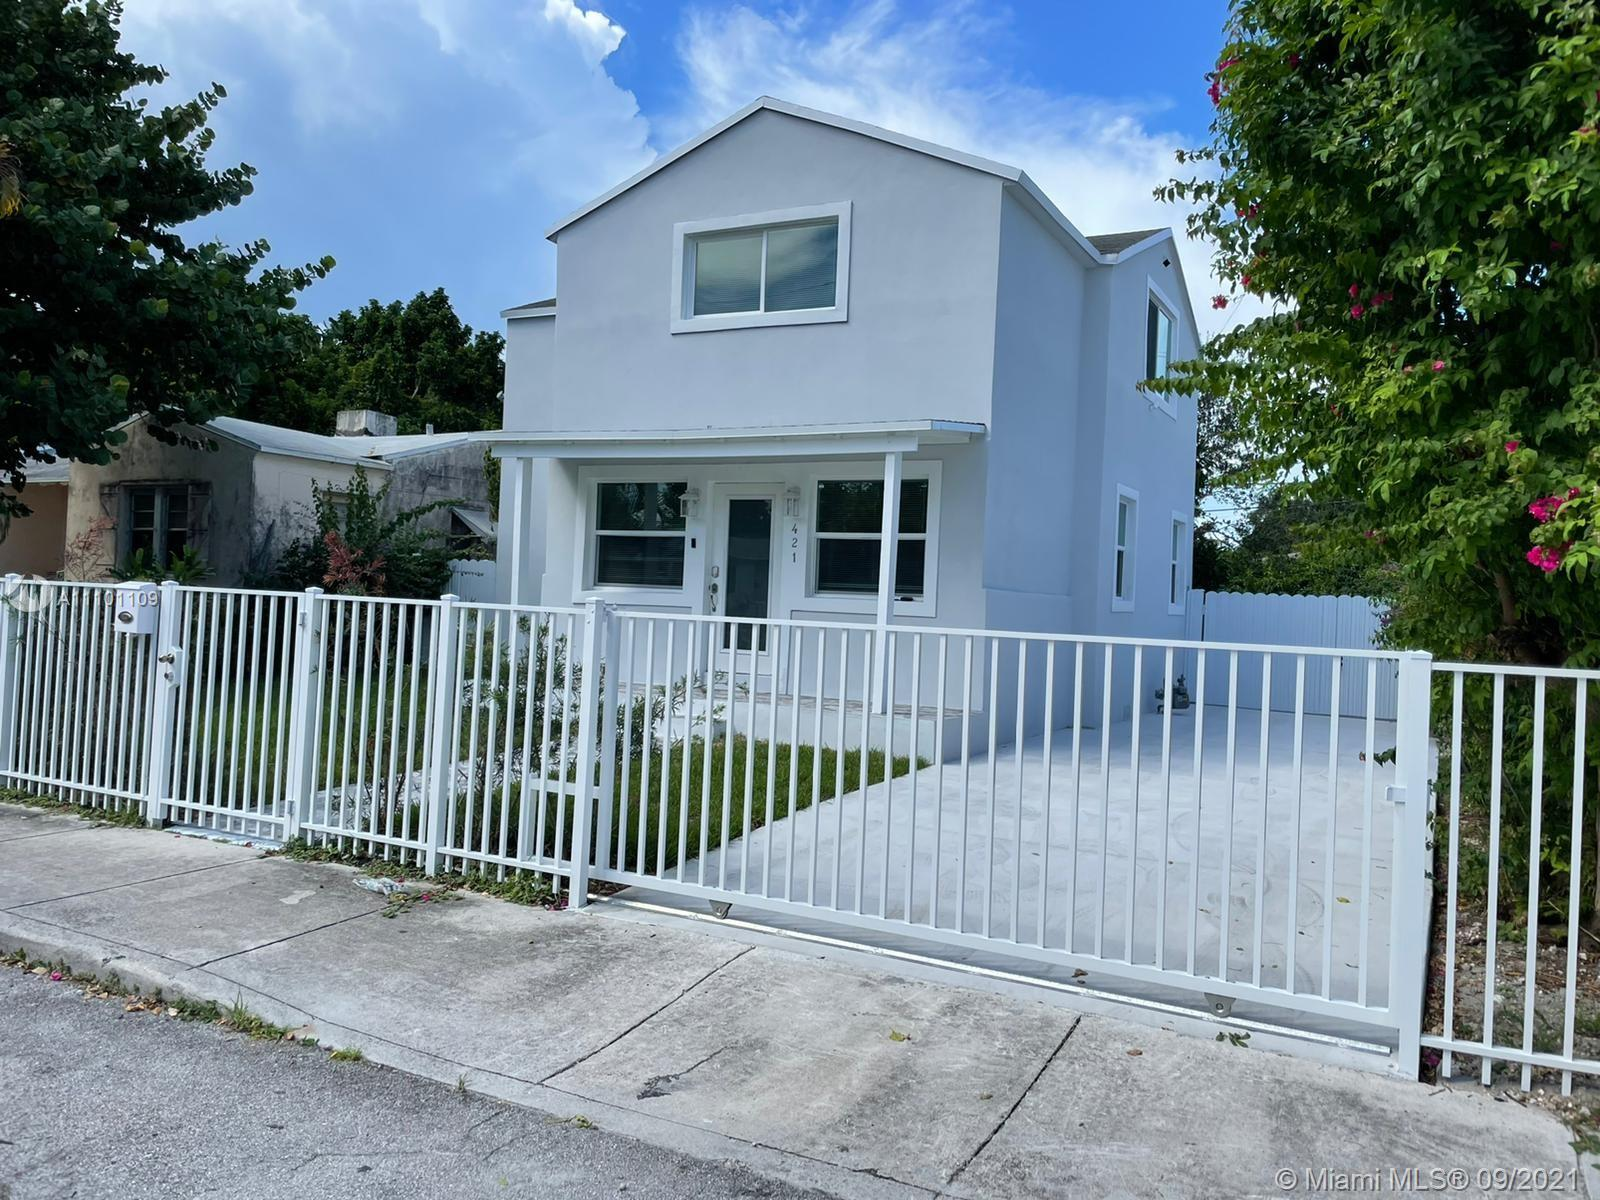 Single Family Home,For Sale,421 NW 44th St, Miami, Florida 33127,Brickell,realty,broker,condos near me